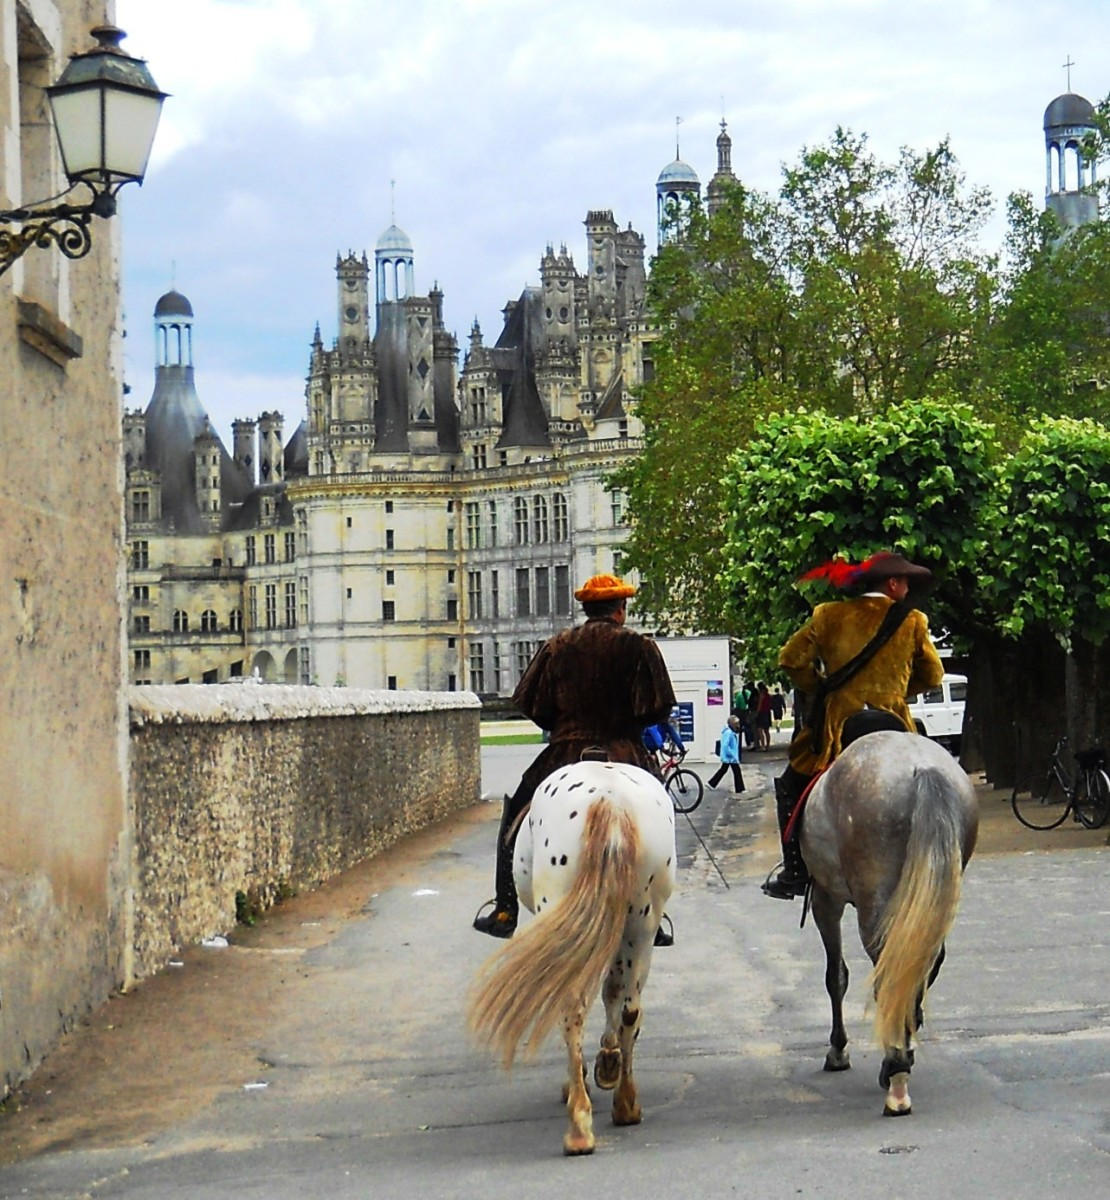 After touring the castle, we bought gelato and watched the costumed actors on horses.